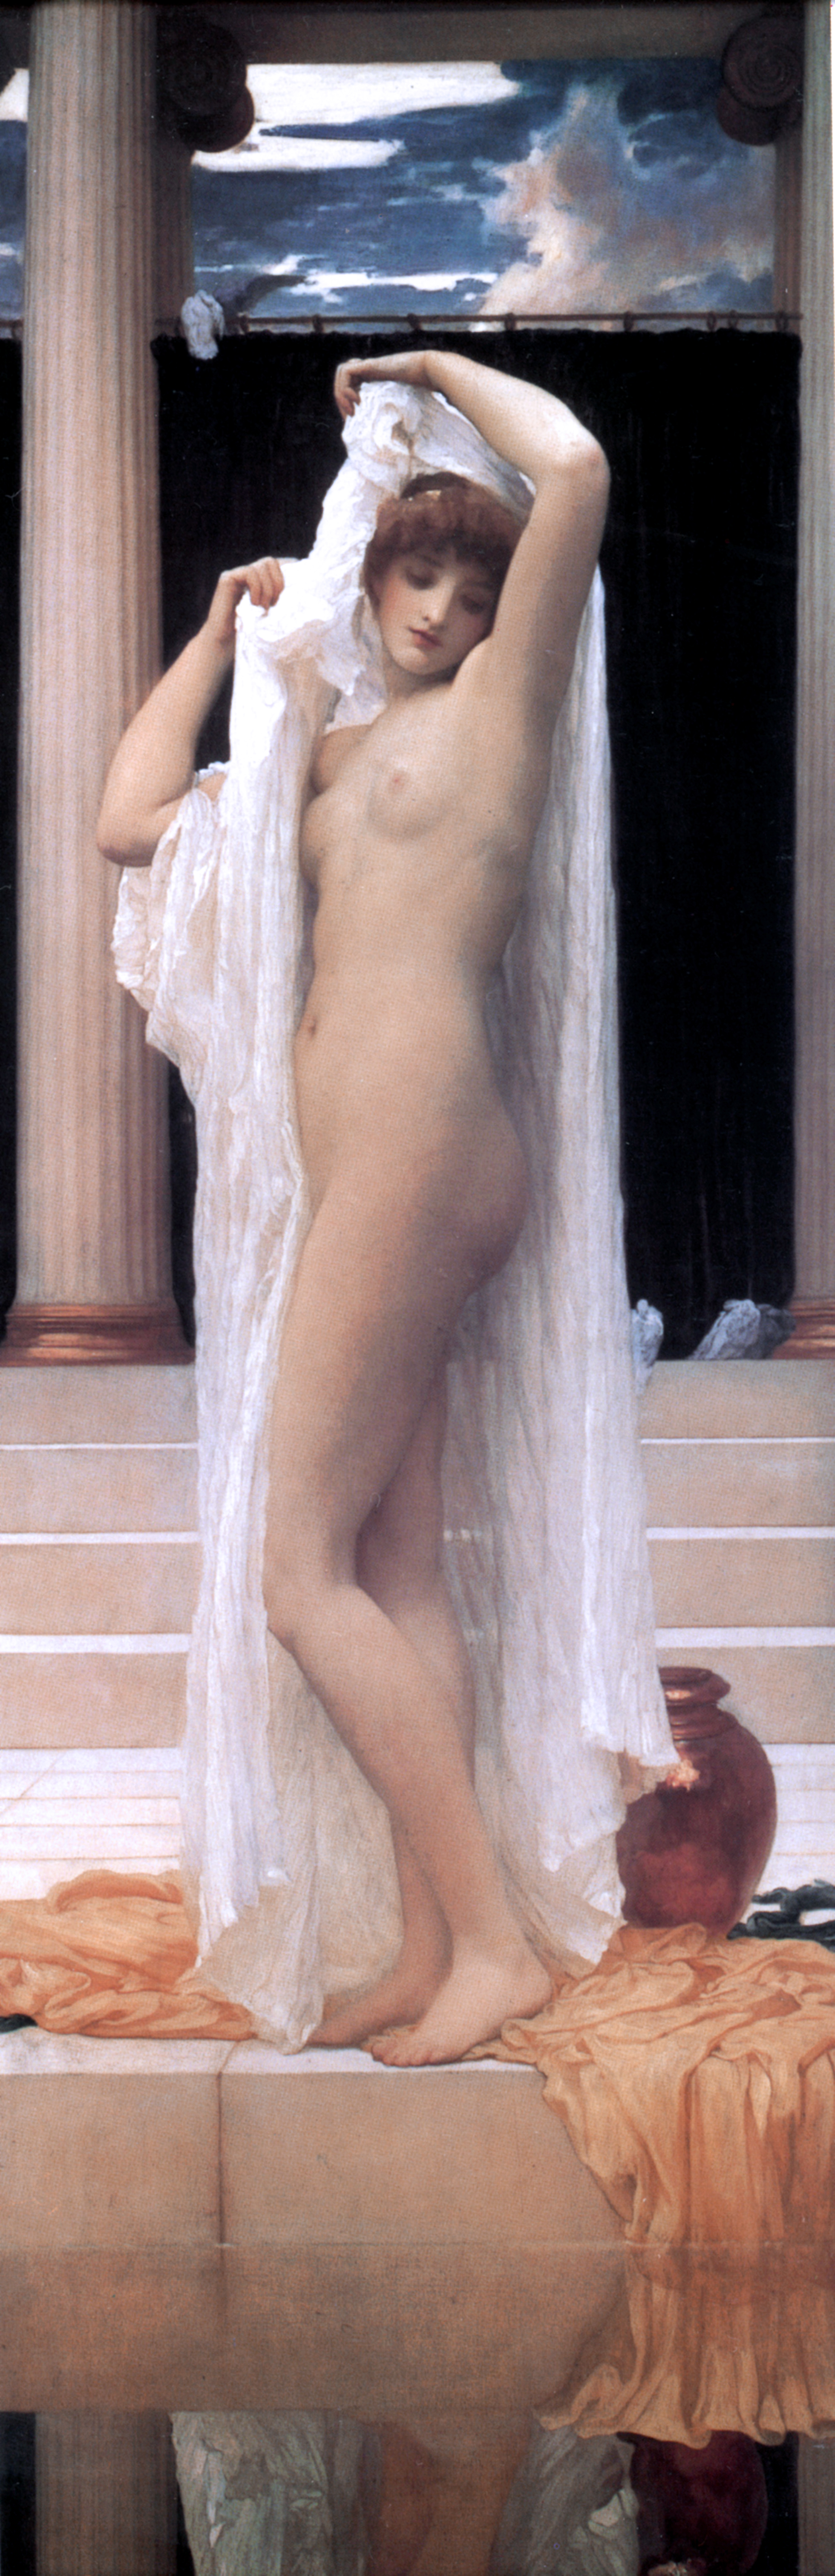 http://upload.wikimedia.org/wikipedia/commons/a/aa/Frederic_Leighton_The_Bath_of_Psyche.jpg